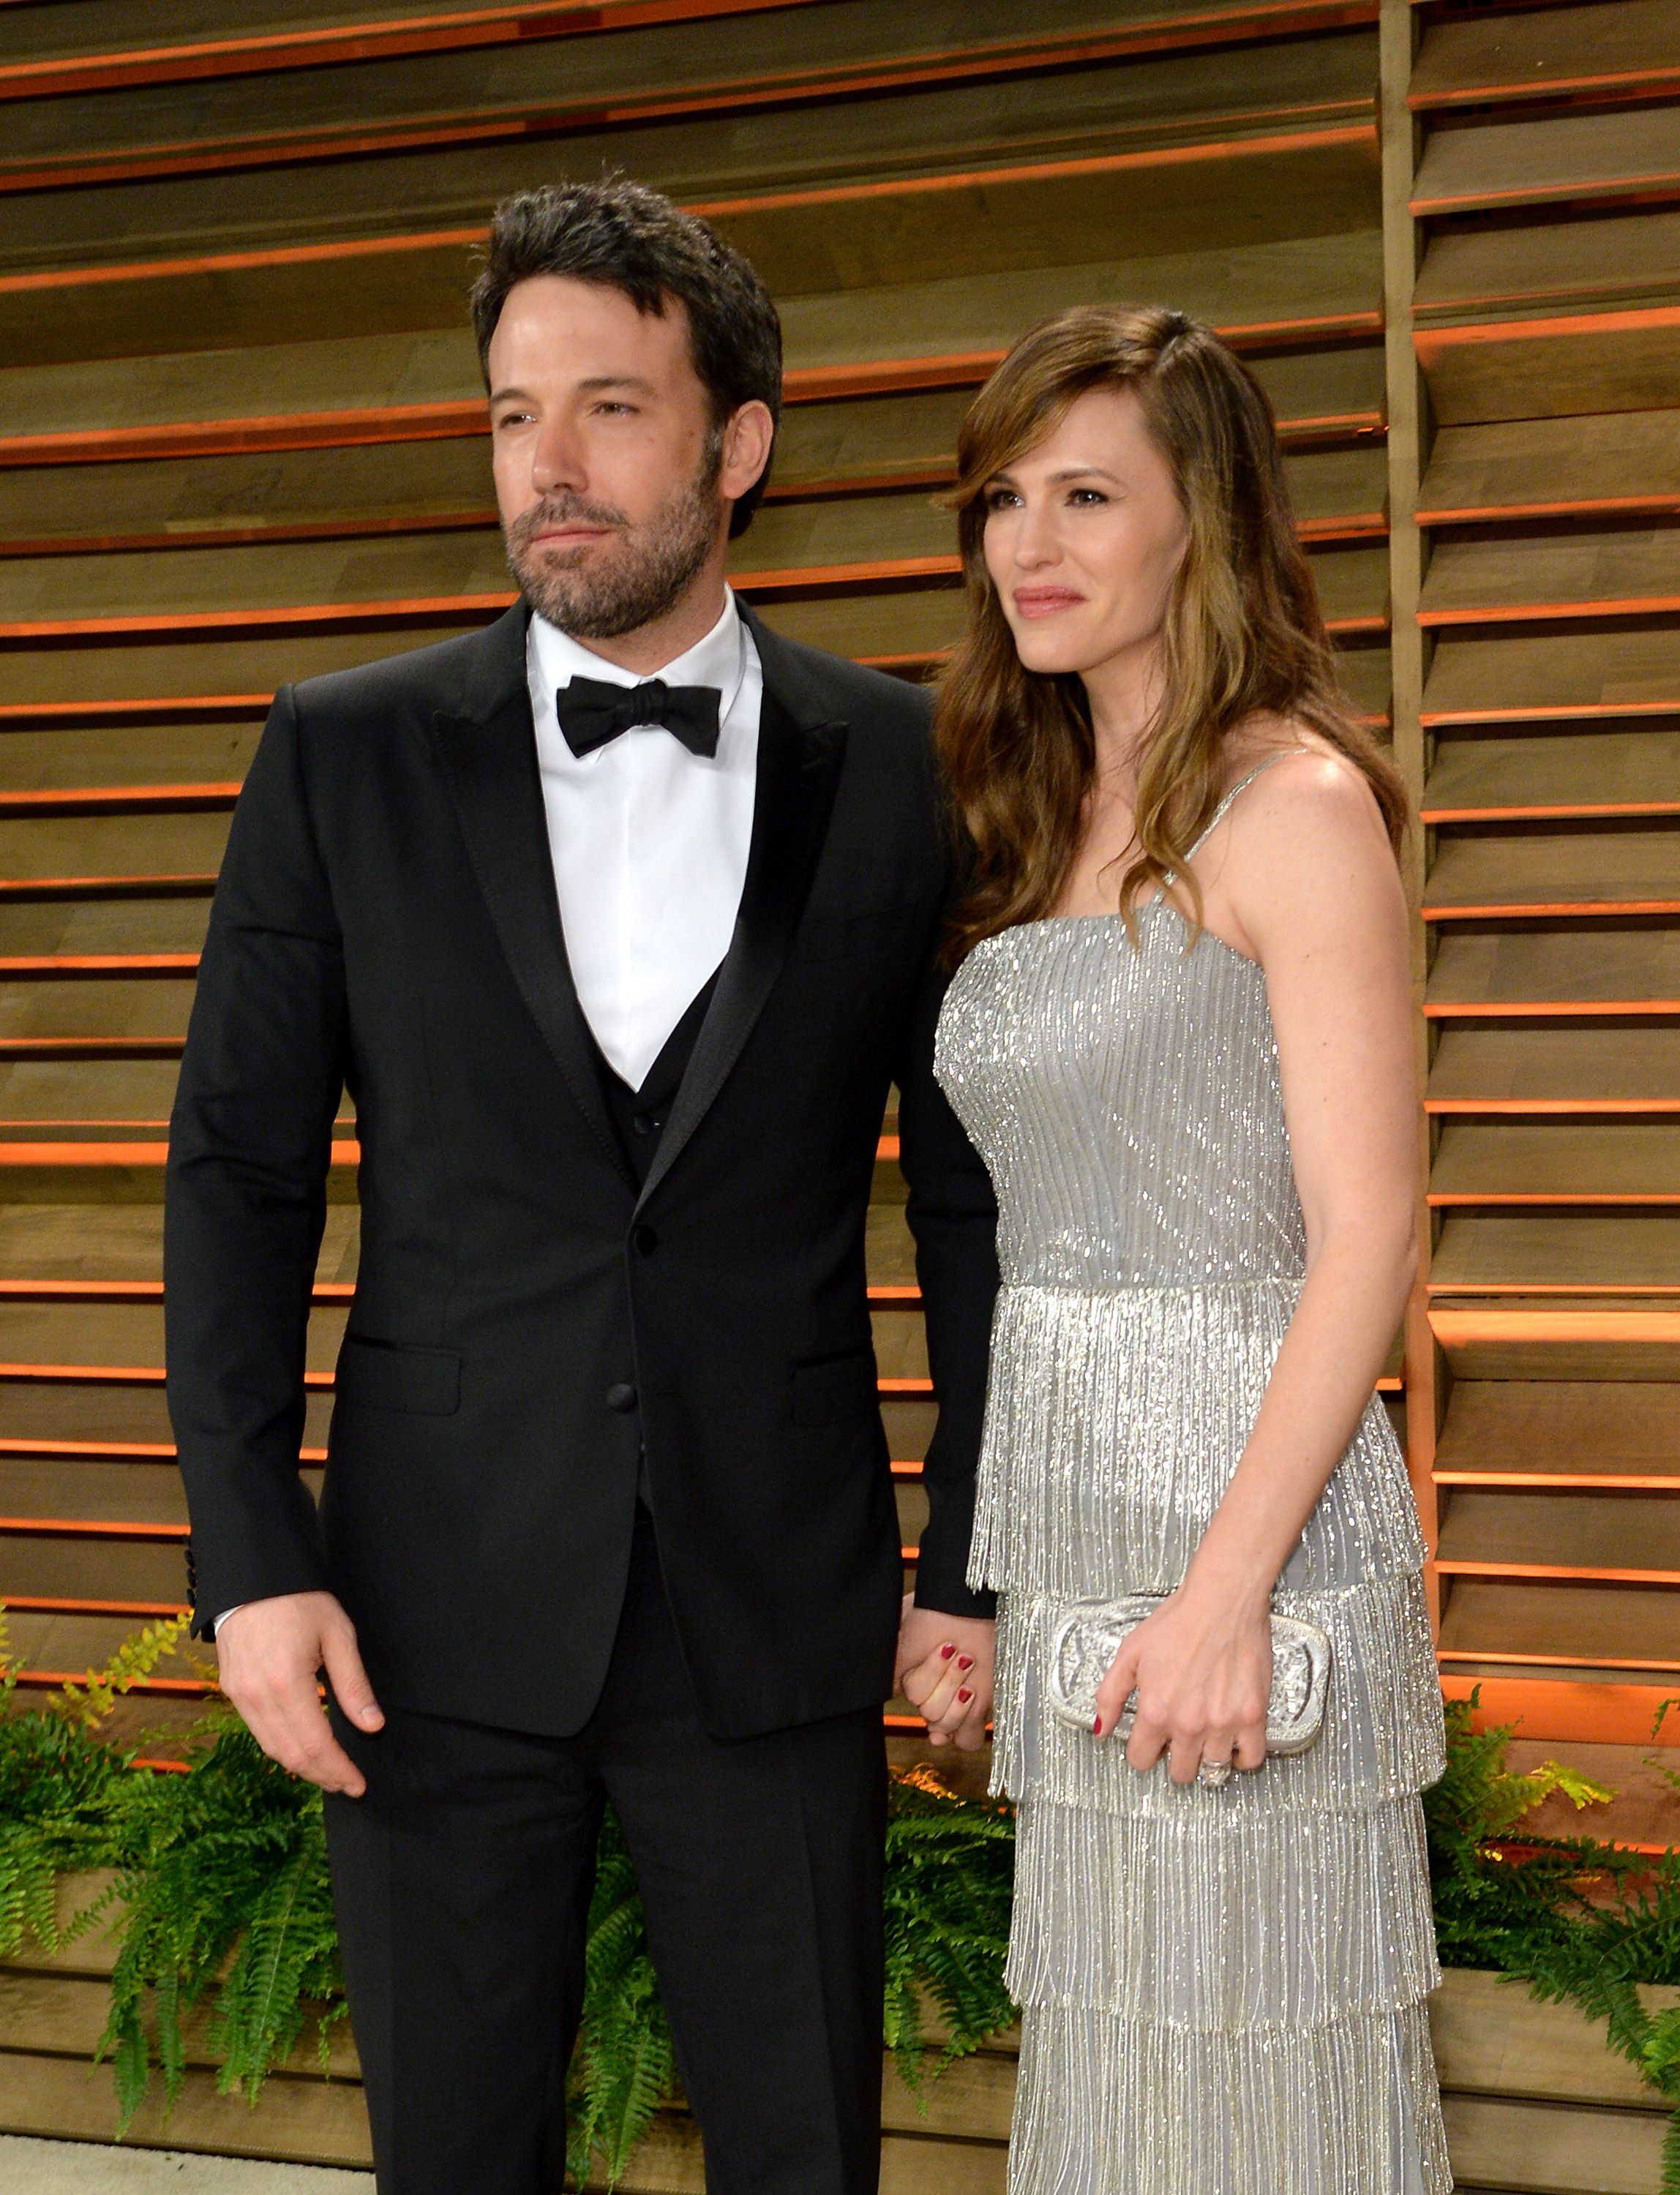 Ben Affleck and actress Jennifer Garner at the 2014 Vanity Fair Oscar Party Hosted By Graydon Carter on March 2, 2014   Photo: Getty Images